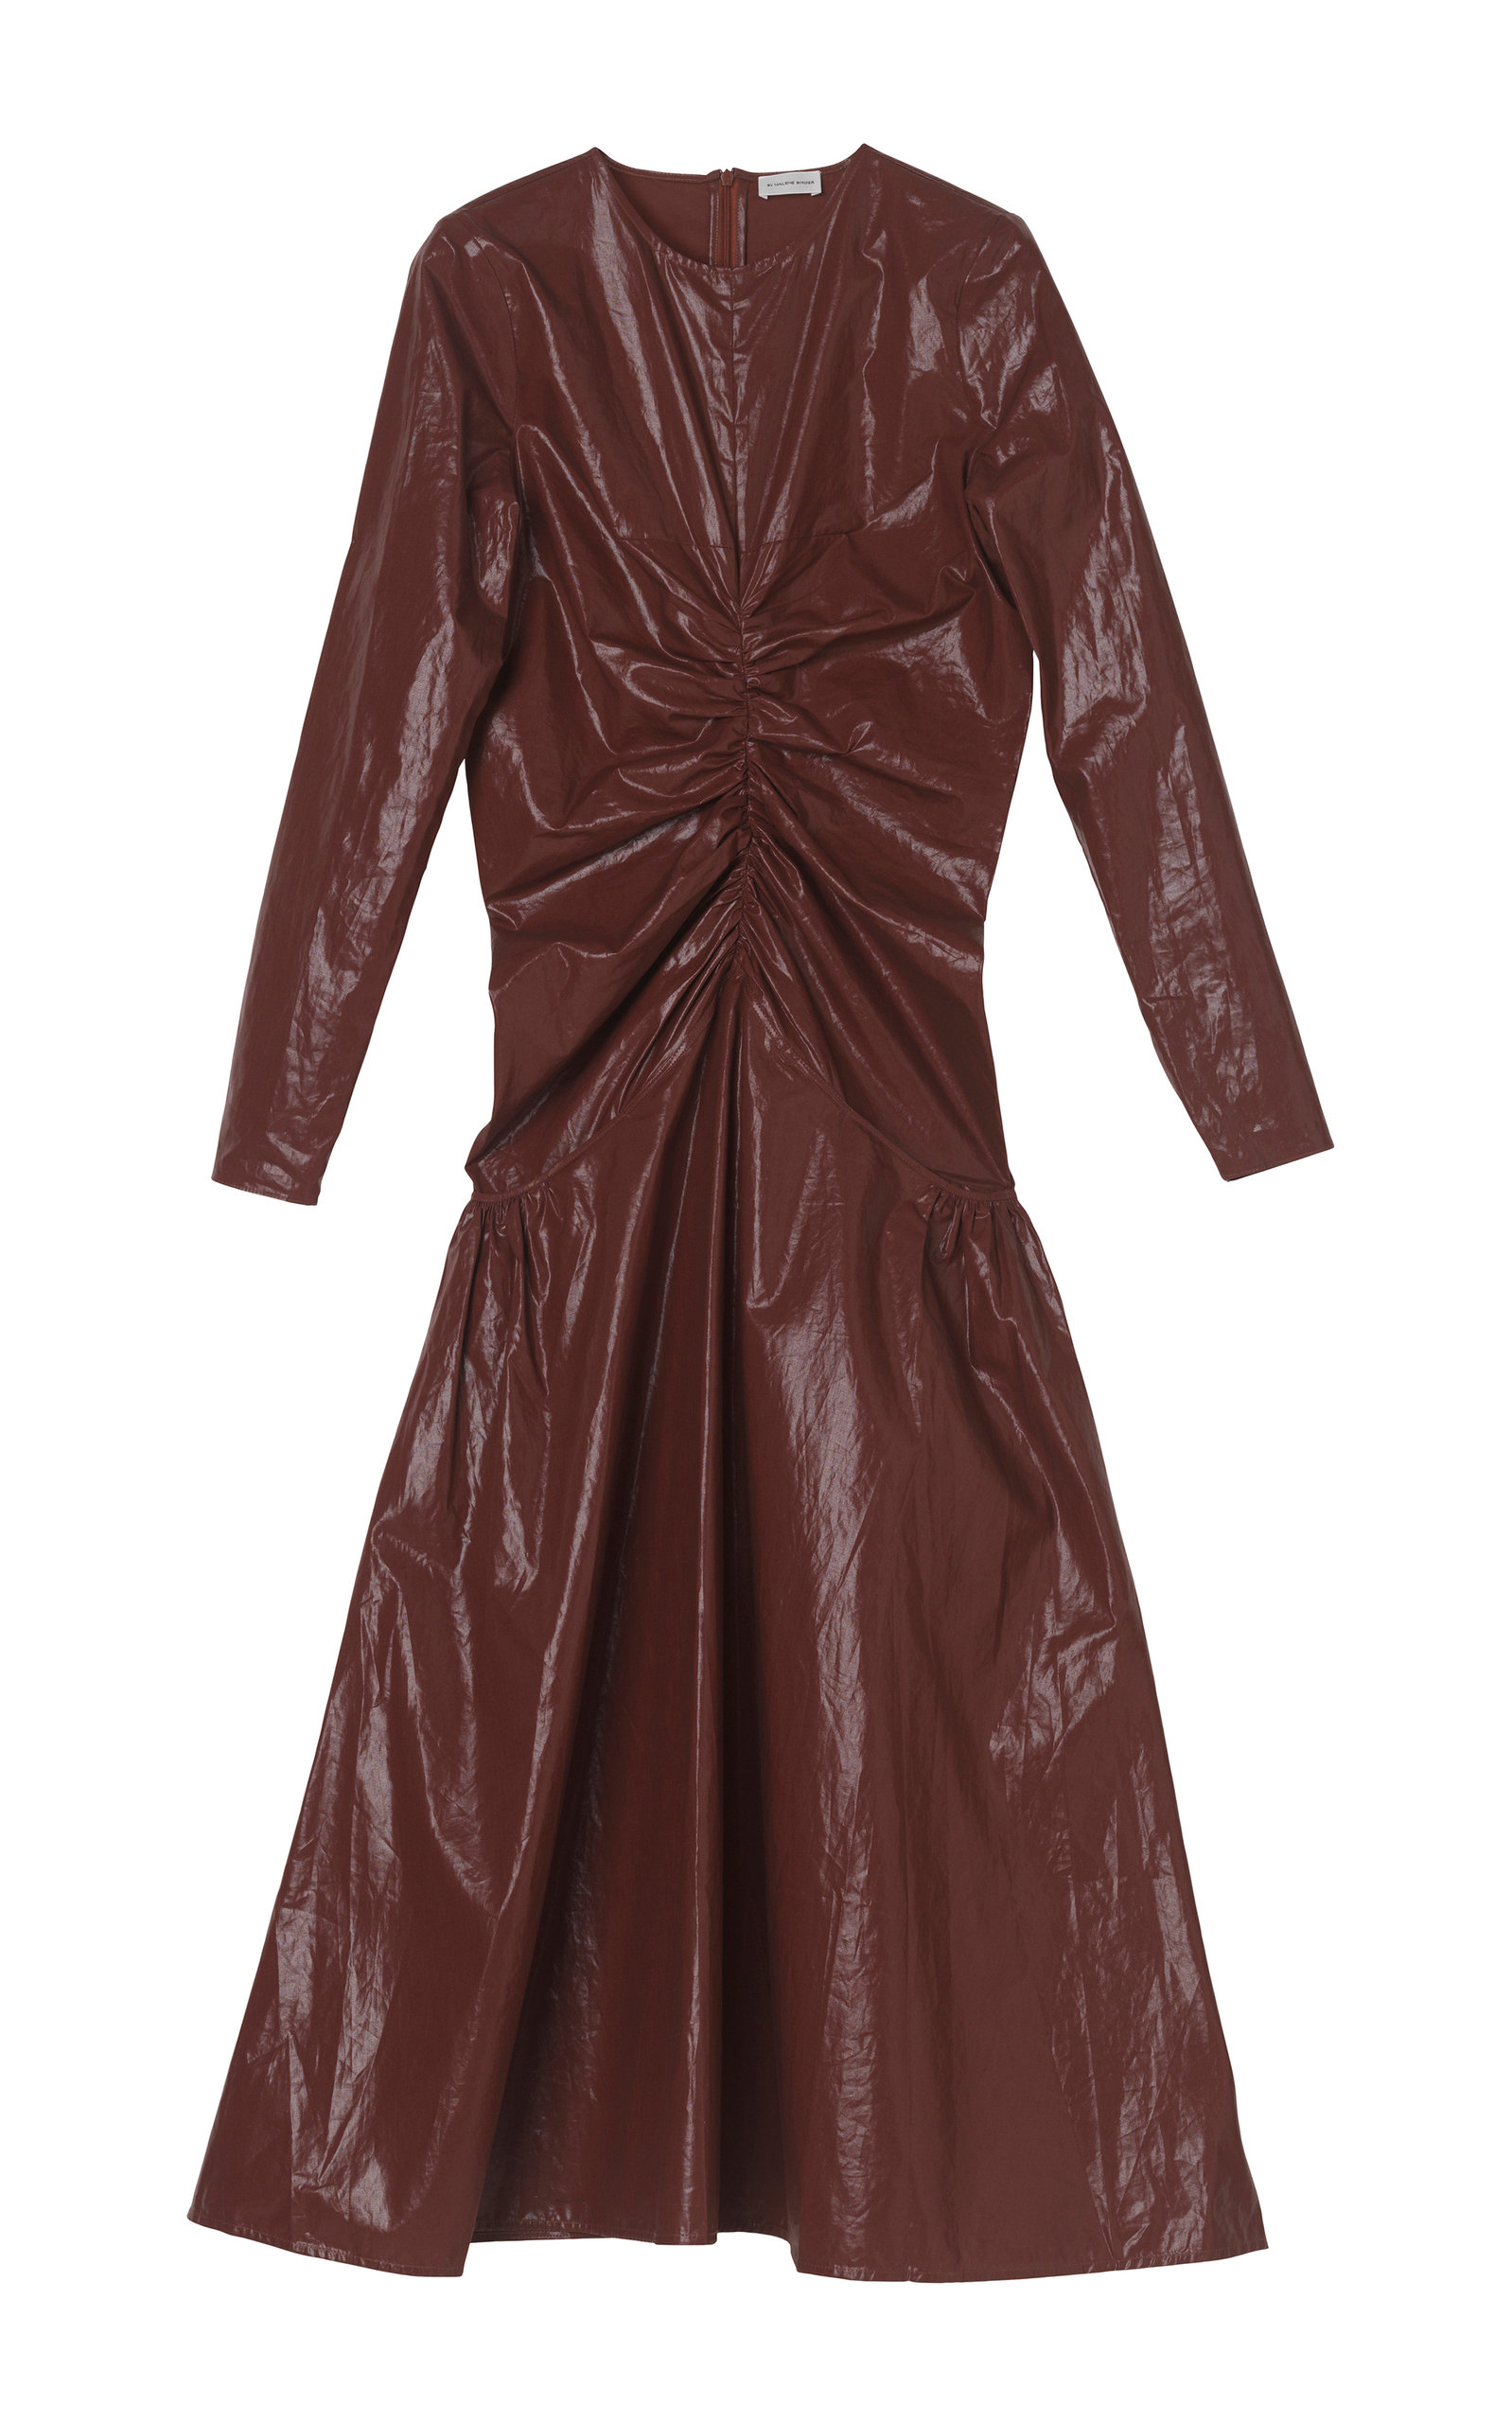 Buy By Malene Birger Carlina Coated Cotton Dress online, shop By Malene Birger at the best price